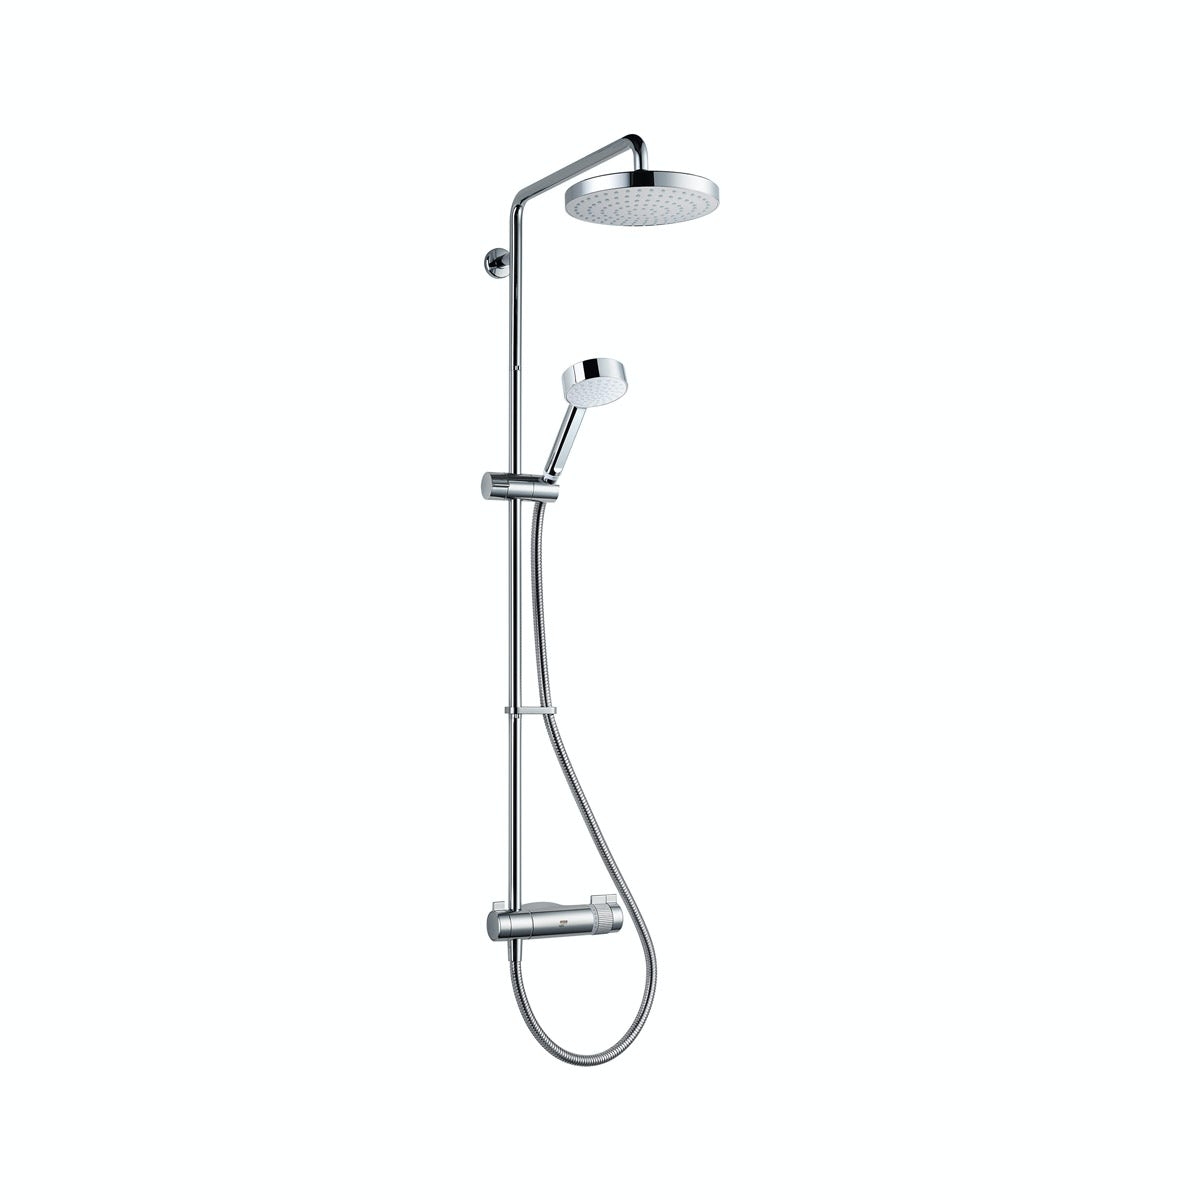 Mira Agile ERD thermostatic mixer shower